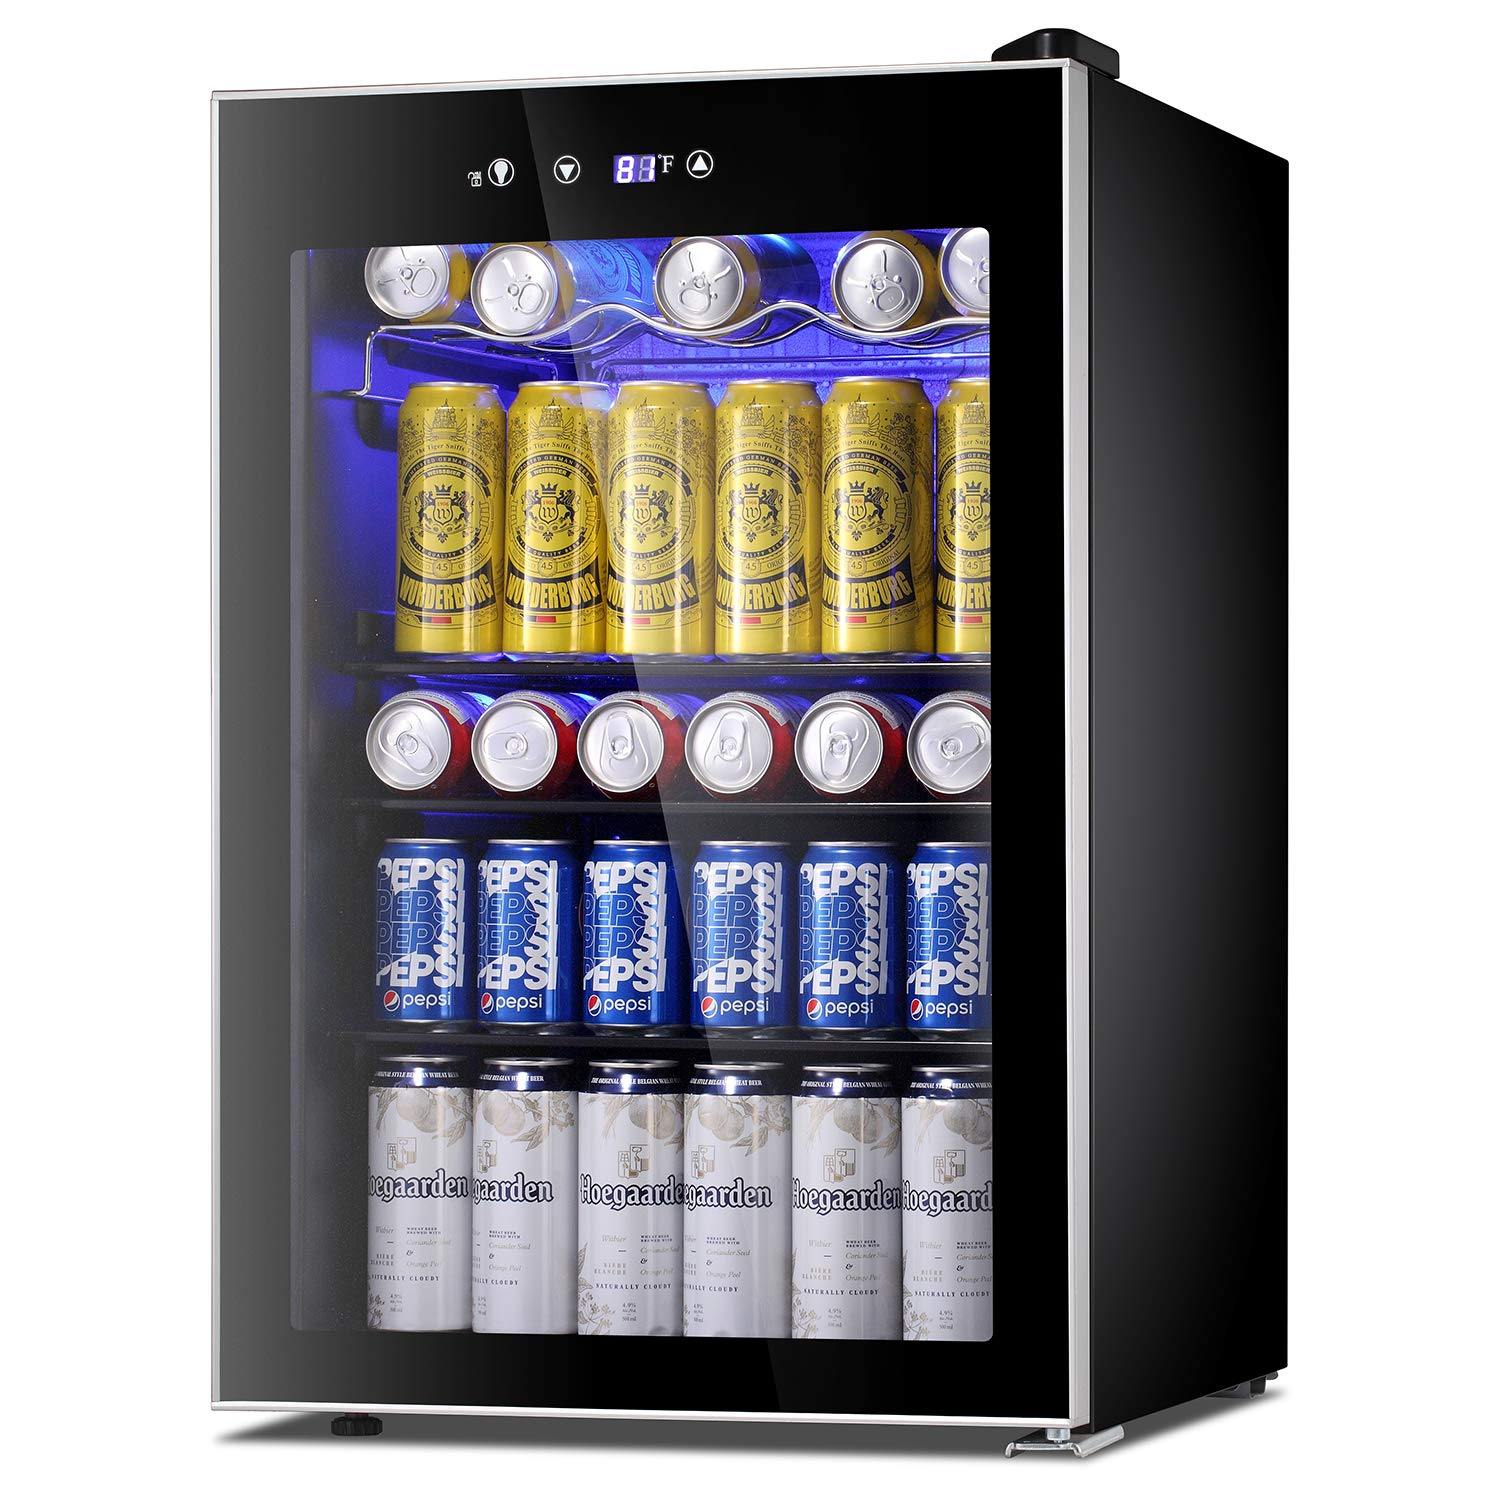 Antarctic Star Beverage Refrigerator Cooler-120 Can Mini Fridge Glass Door for Soda Beer Wine Stainless Steel Glass Door Small Drink Dispenser Machine Digital Display for Home, Office Bar,4.5cu.ft